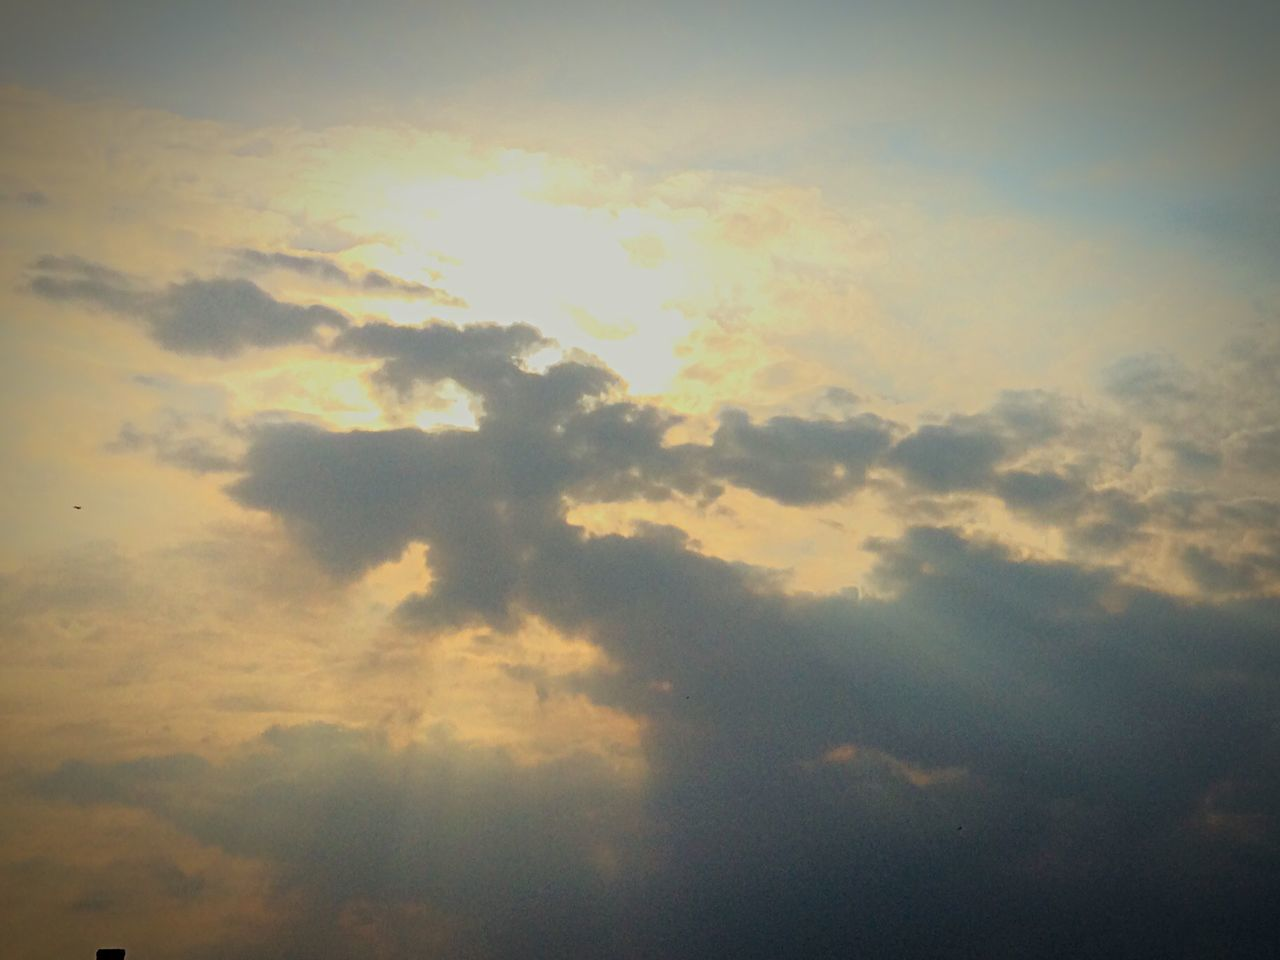 nature, beauty in nature, cloud - sky, backgrounds, sky, scenics, majestic, atmospheric mood, tranquility, sky only, no people, cloudscape, low angle view, tranquil scene, outdoors, full frame, awe, sunset, day